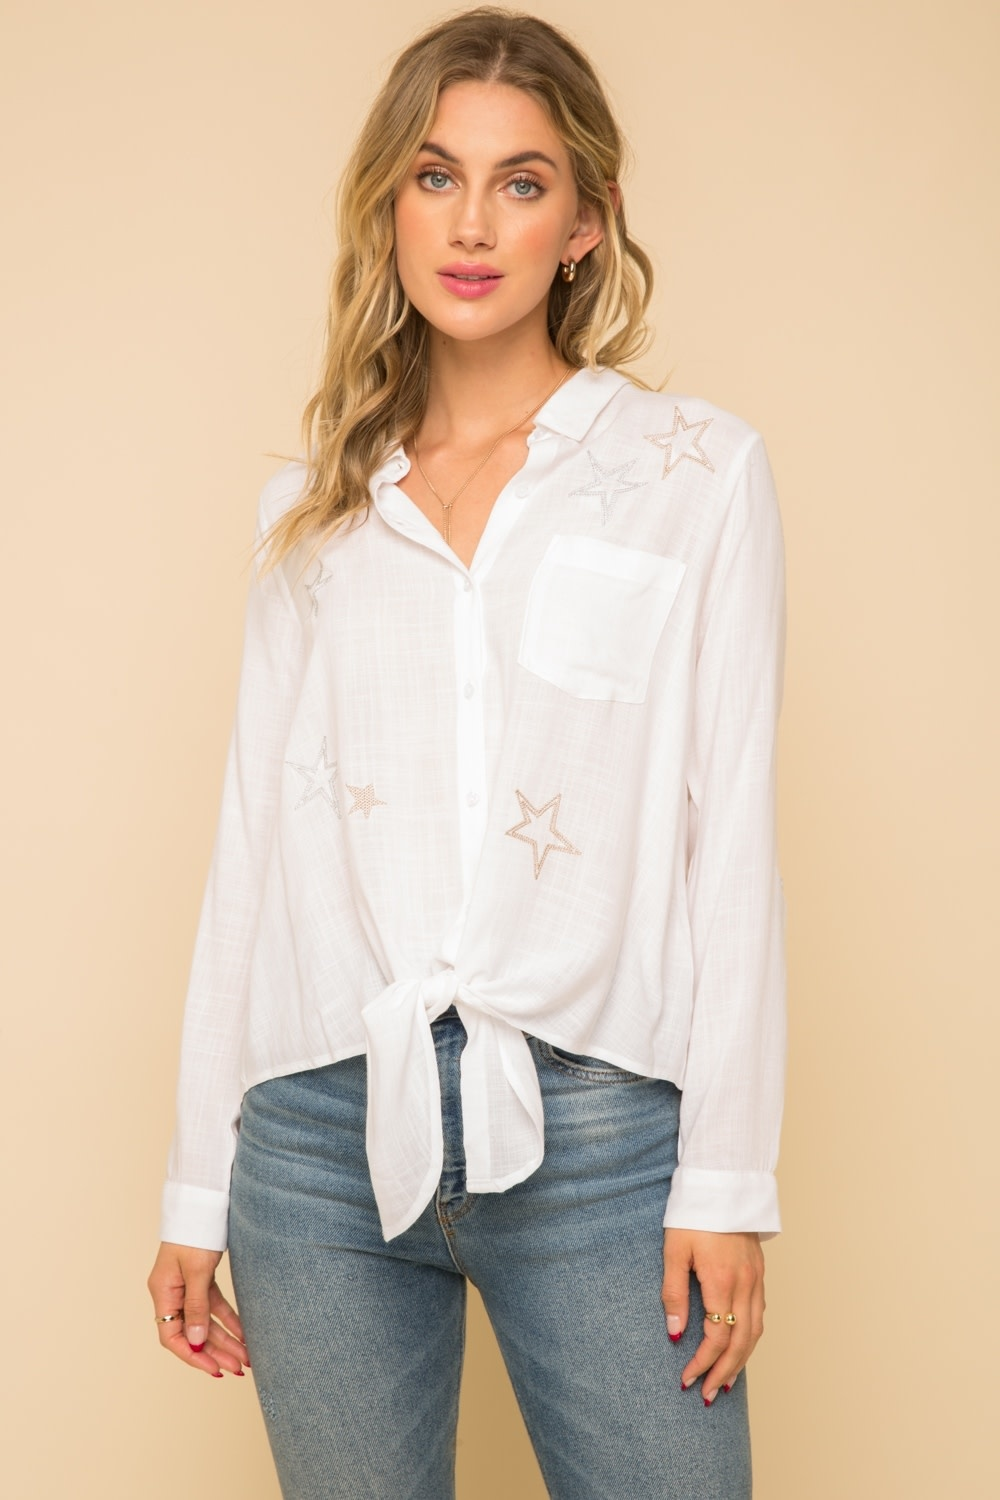 Hem & Thread Tie Front Button Down Top with Star Embroidery